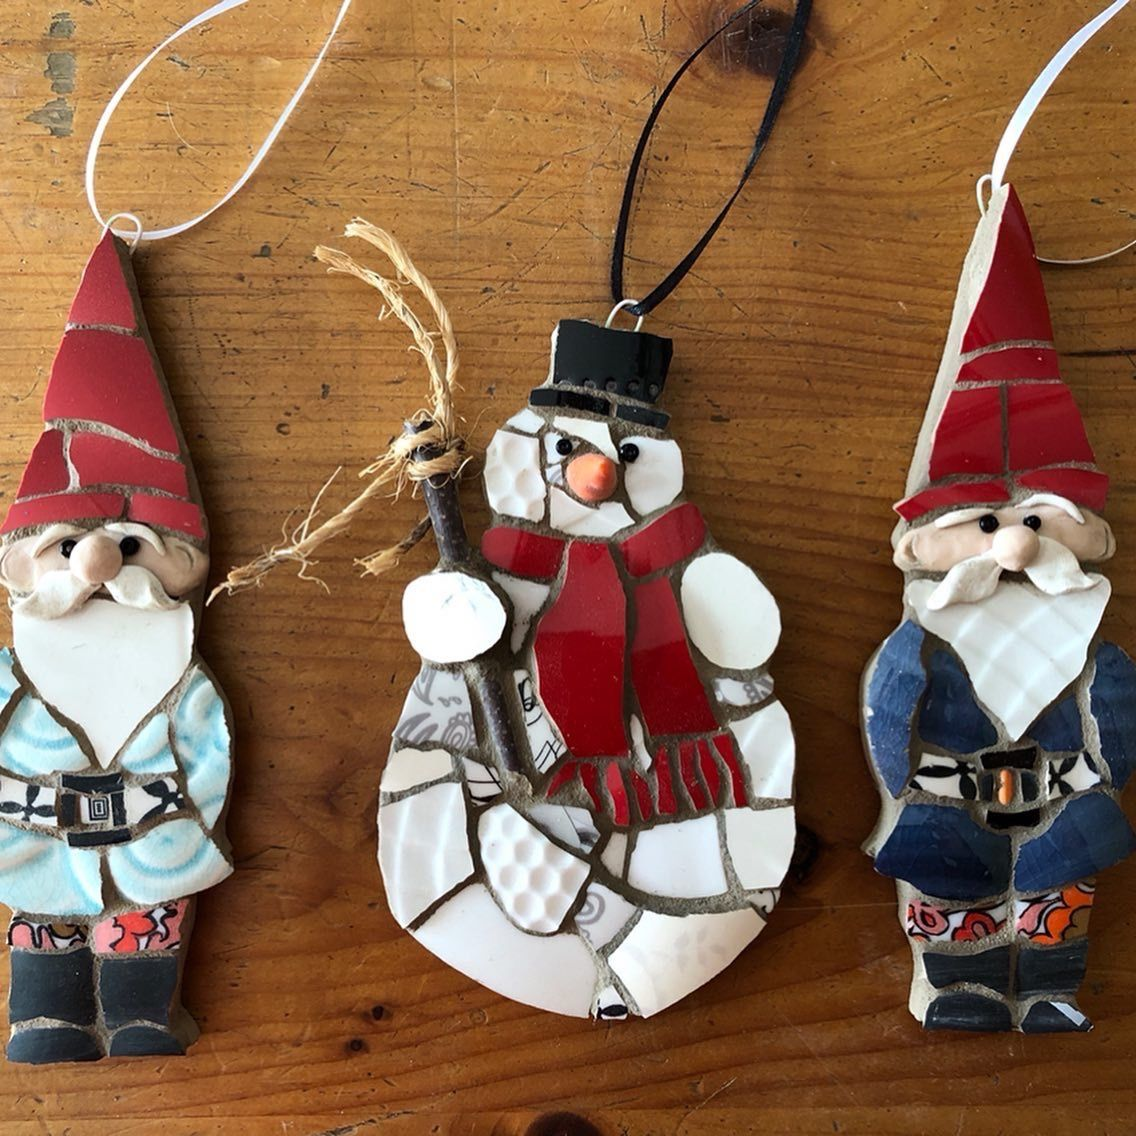 Lovable Holiday 3D Ornament Collection Paint Your Own Ceramic Keepsake Set of 4